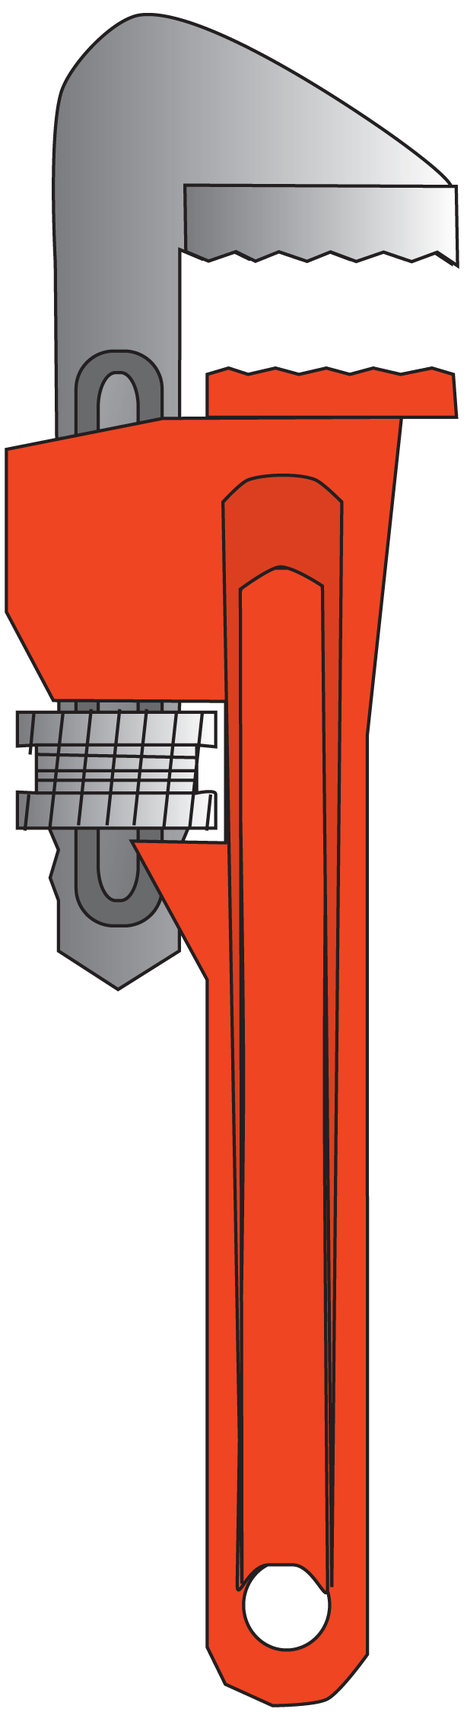 467x1712 Monkey Wrench Vector